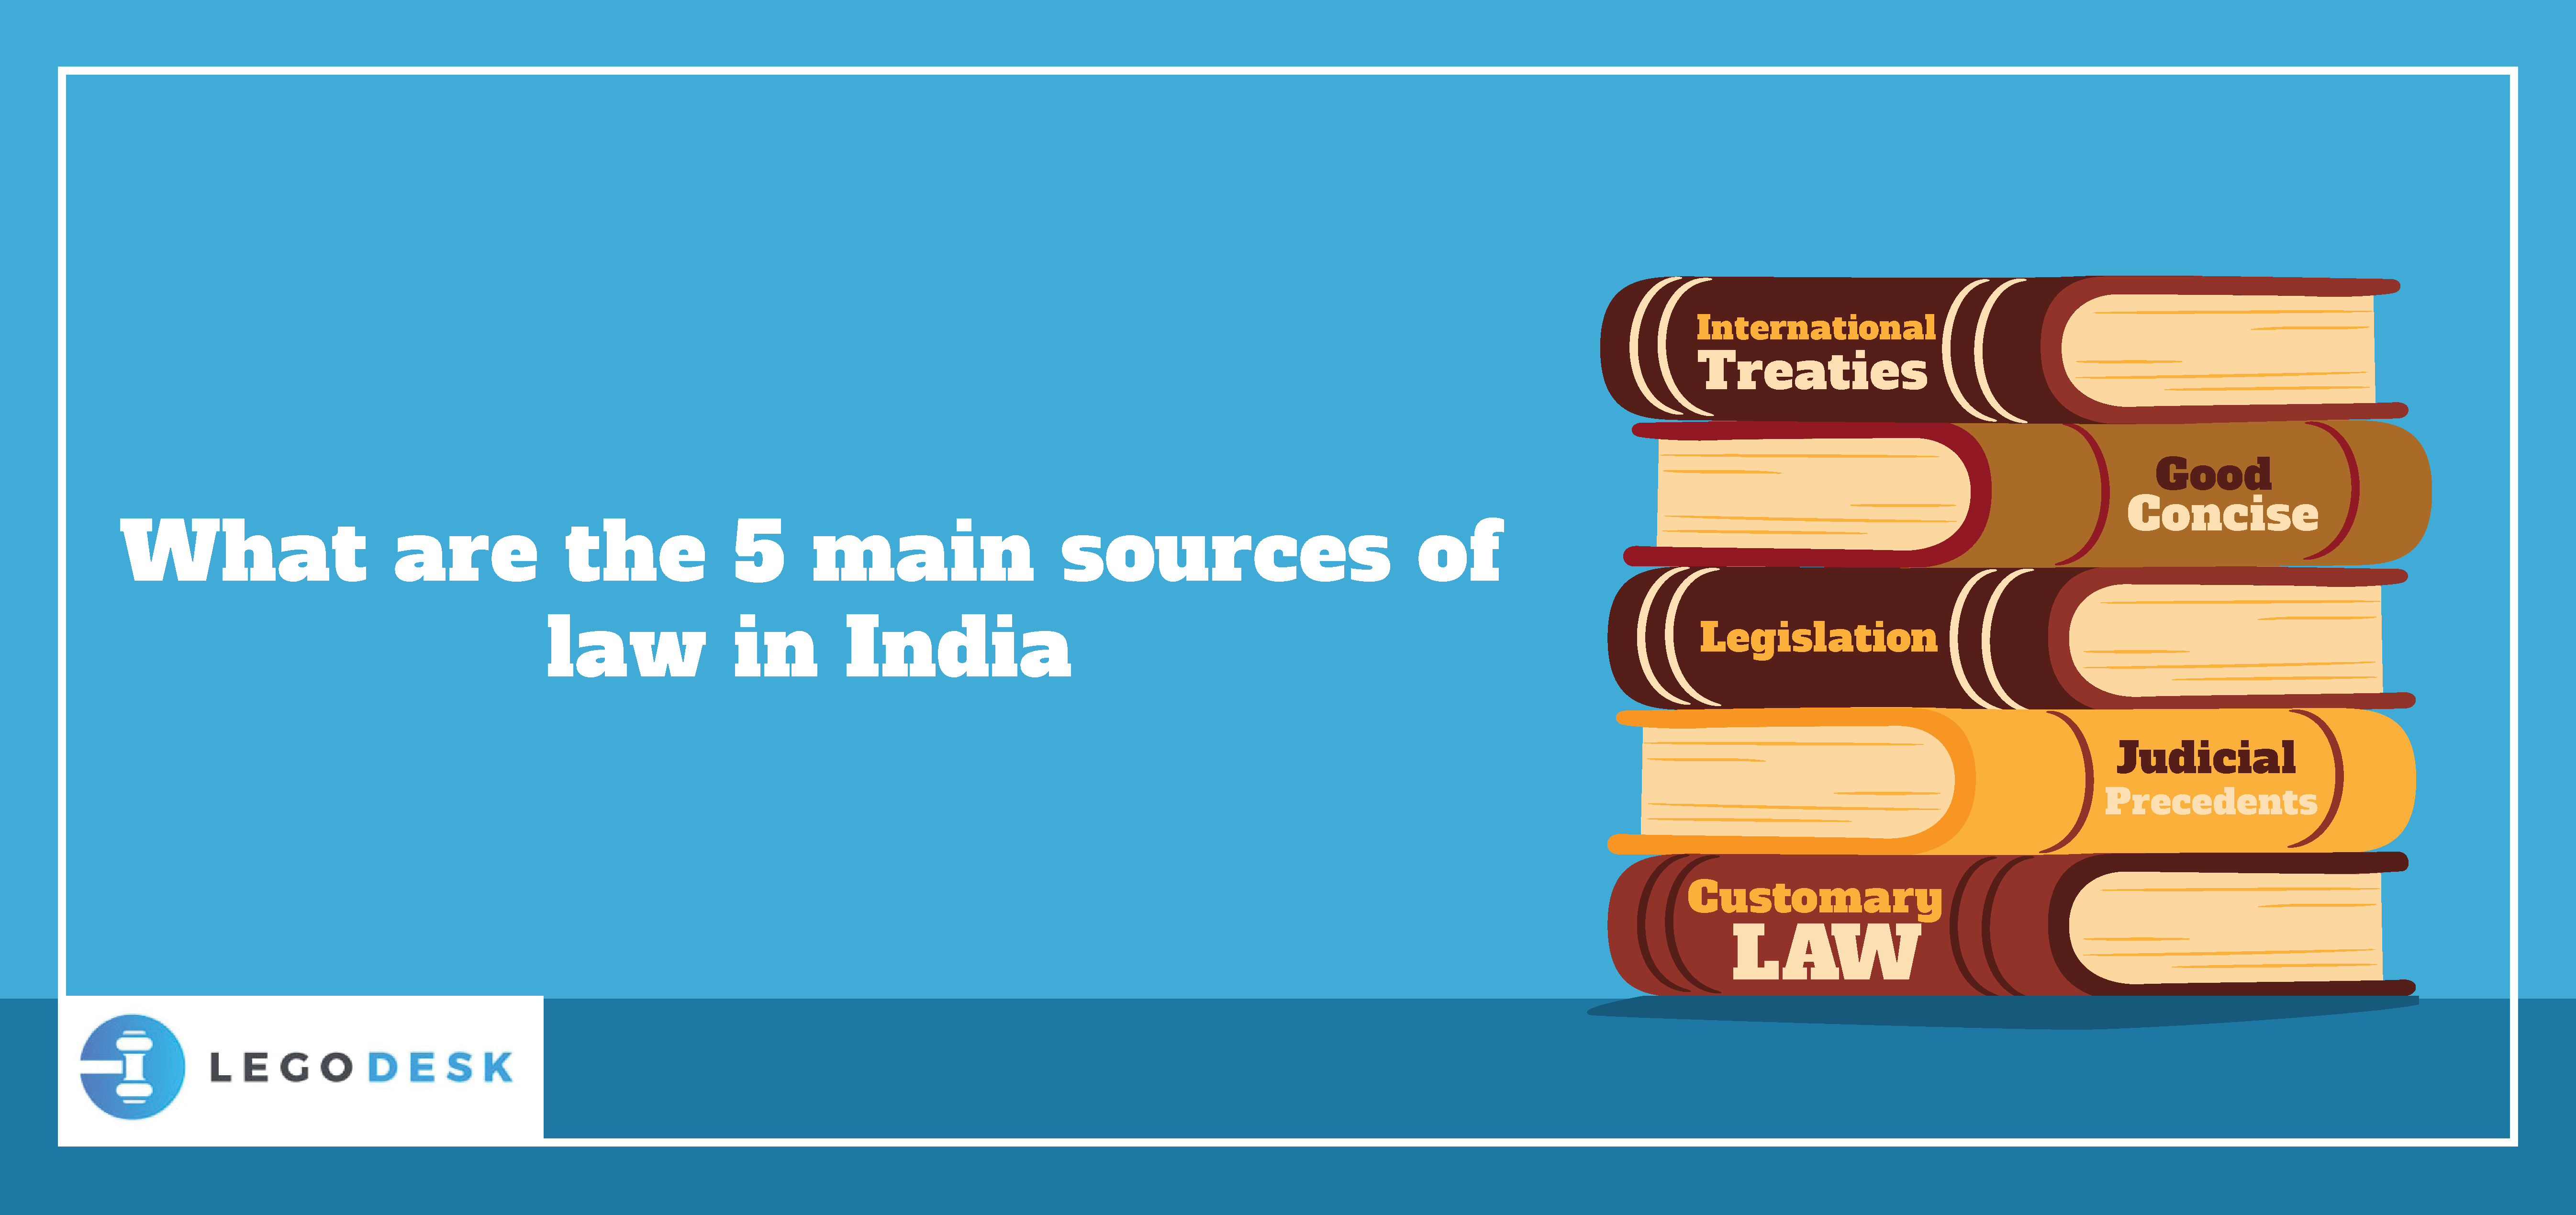 What are the 5 main sources of law in India